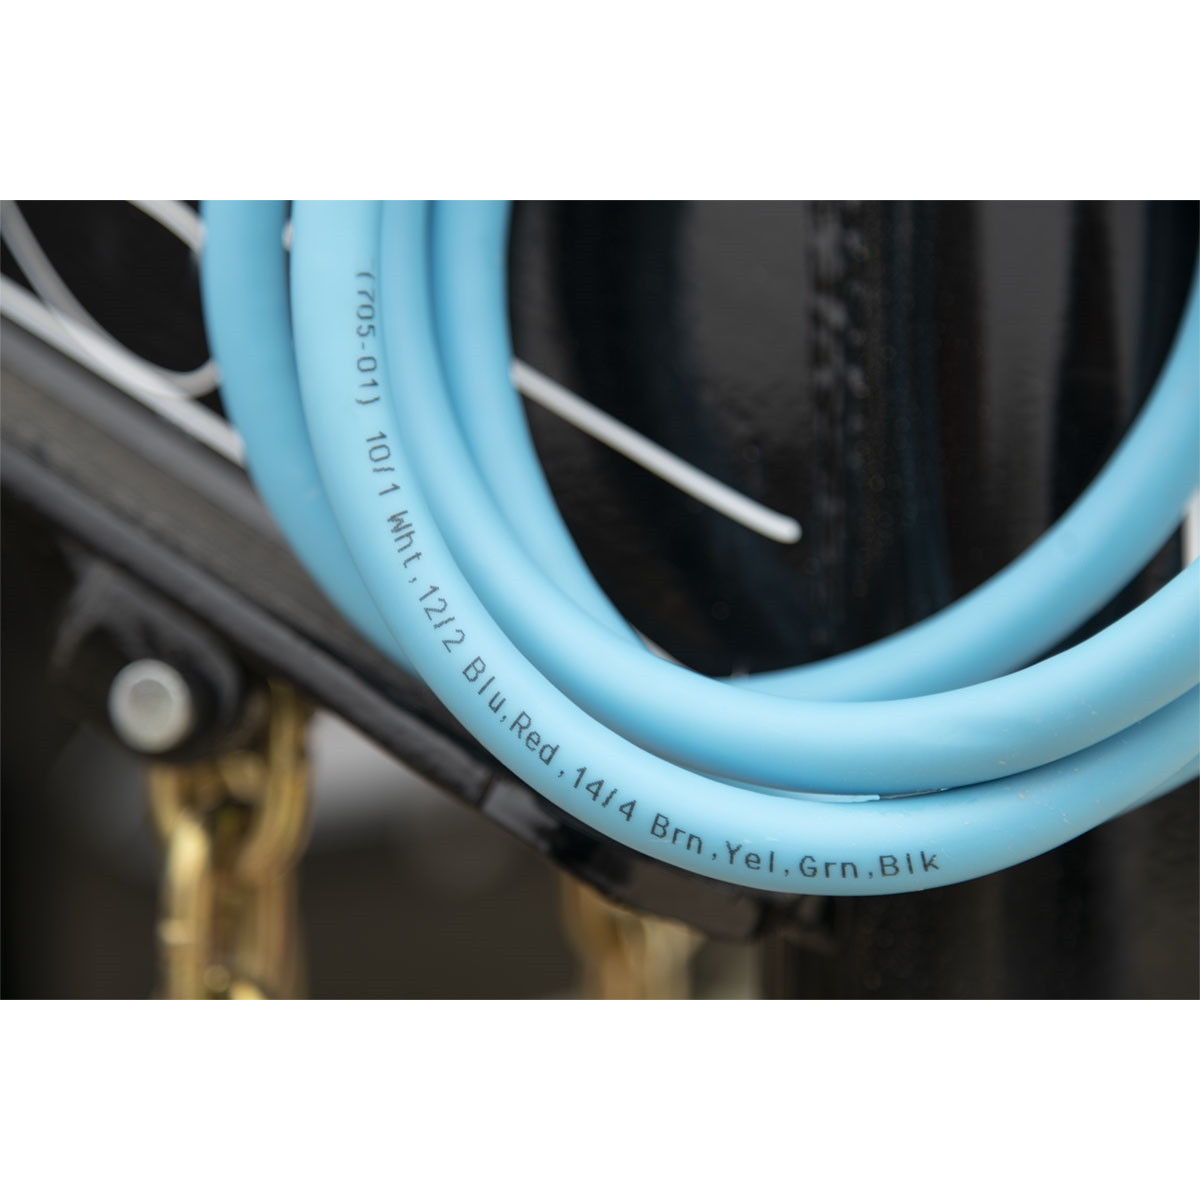 bp wiring harness harness artic front 84  7 way bp jkd brand  harness artic front 84  7 way bp jkd